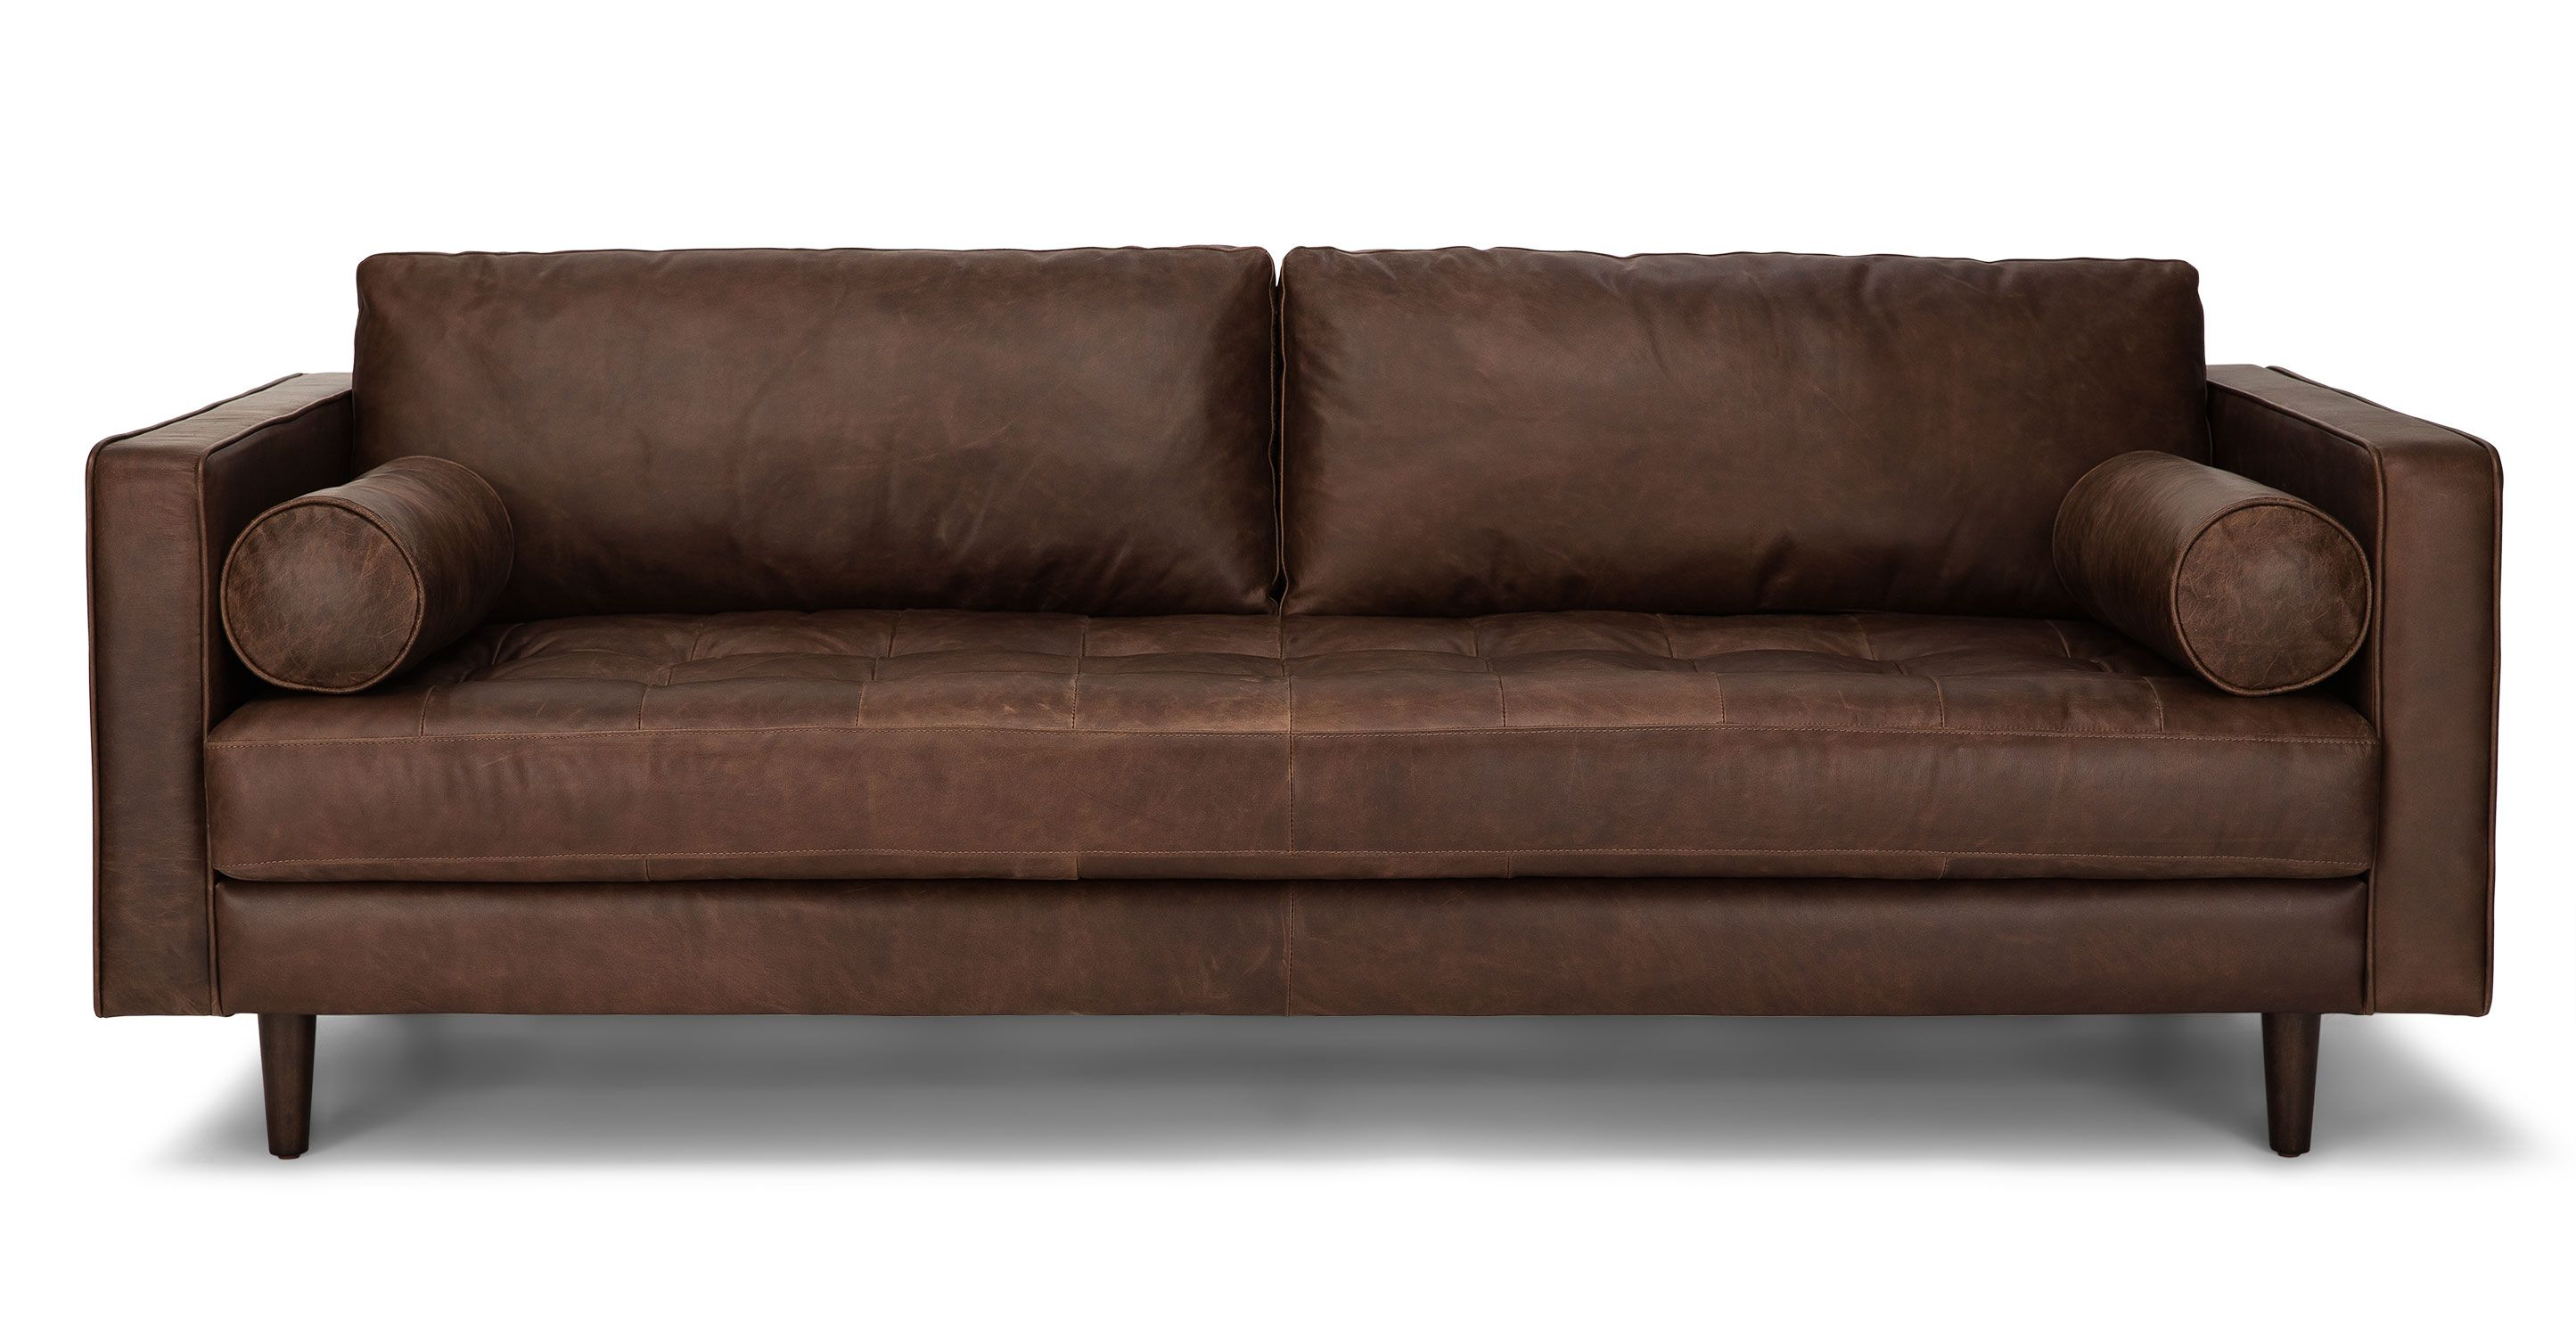 Chocolate Brown Tufted Leather Sofa | Article Sven Modern Furniture ...